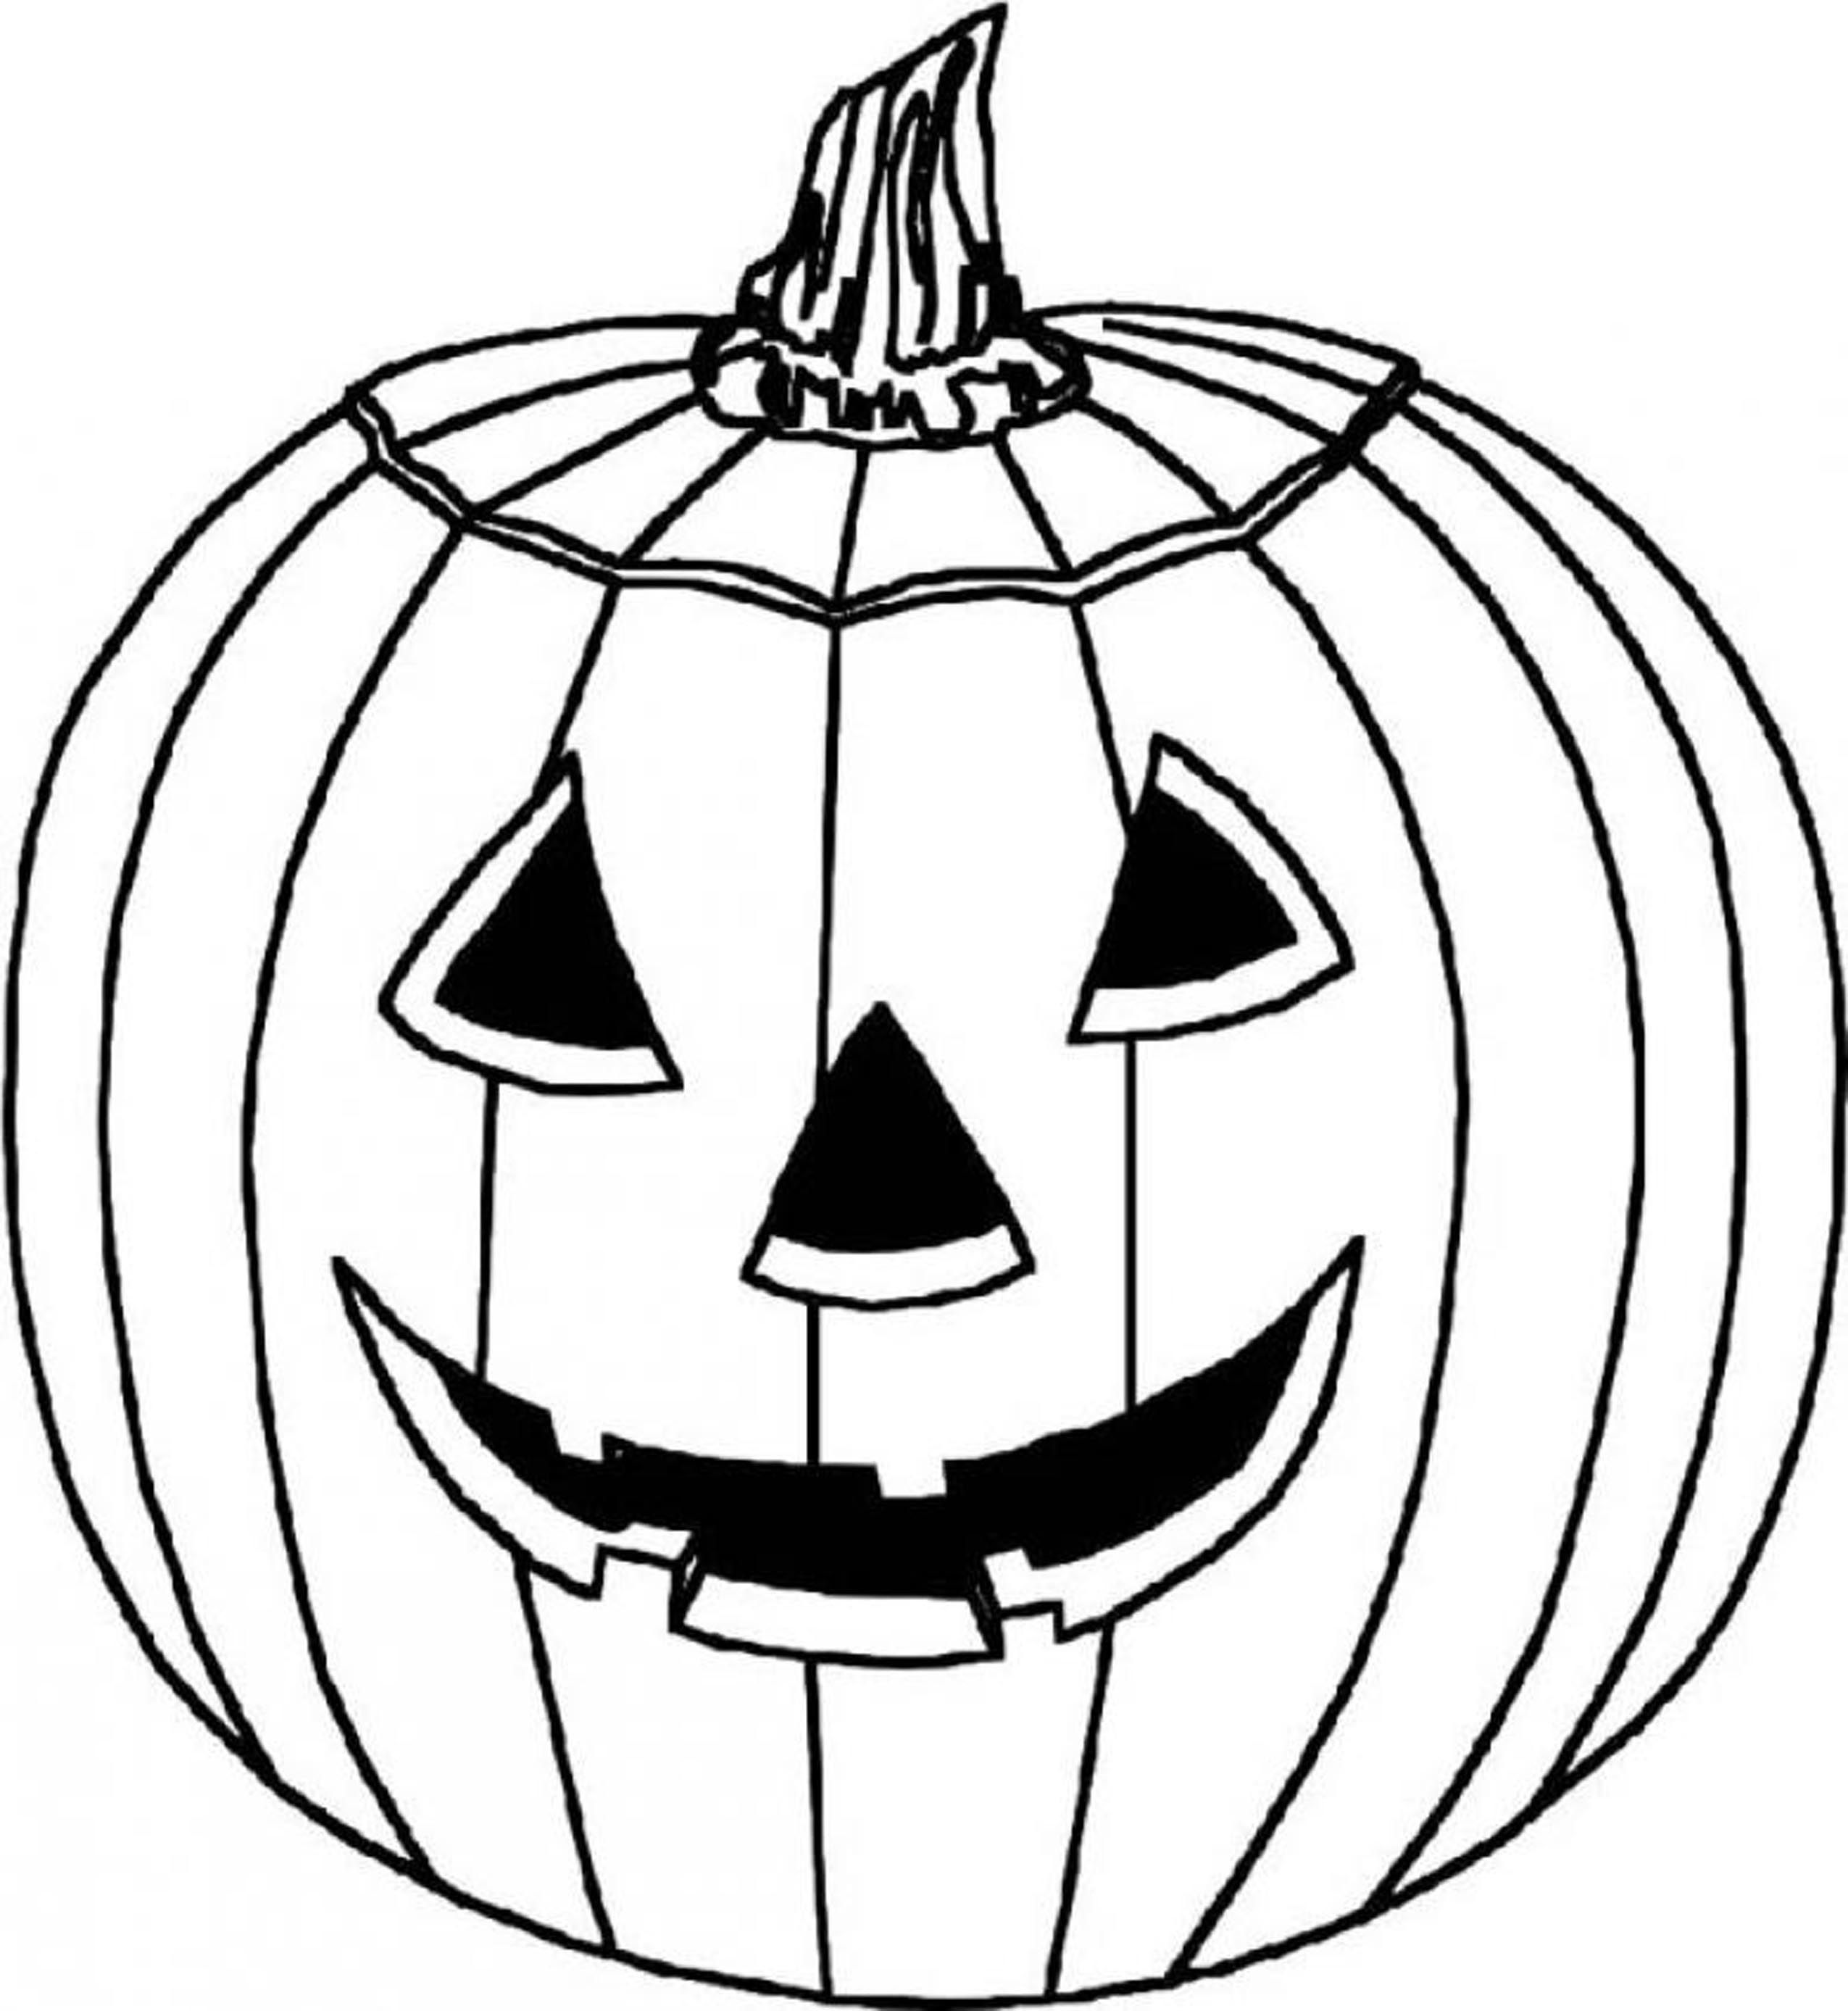 Free coloring pages for halloween and fall - Fall Pumpkin Coloring Pages Printable Kids Colouring Pages